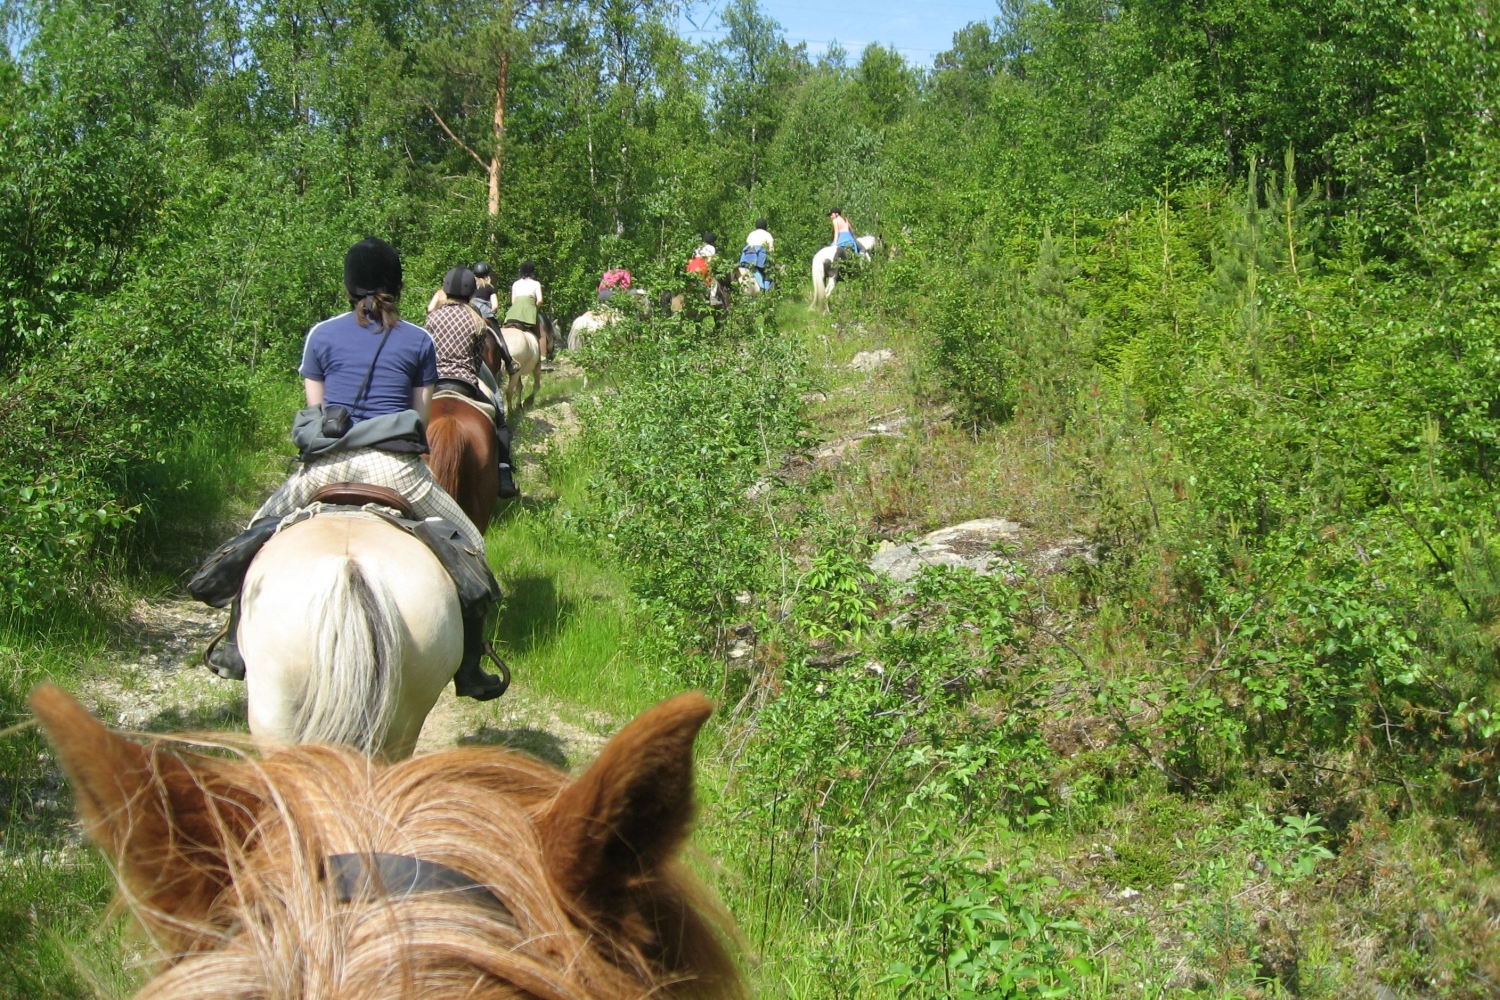 horseback riding in the trail